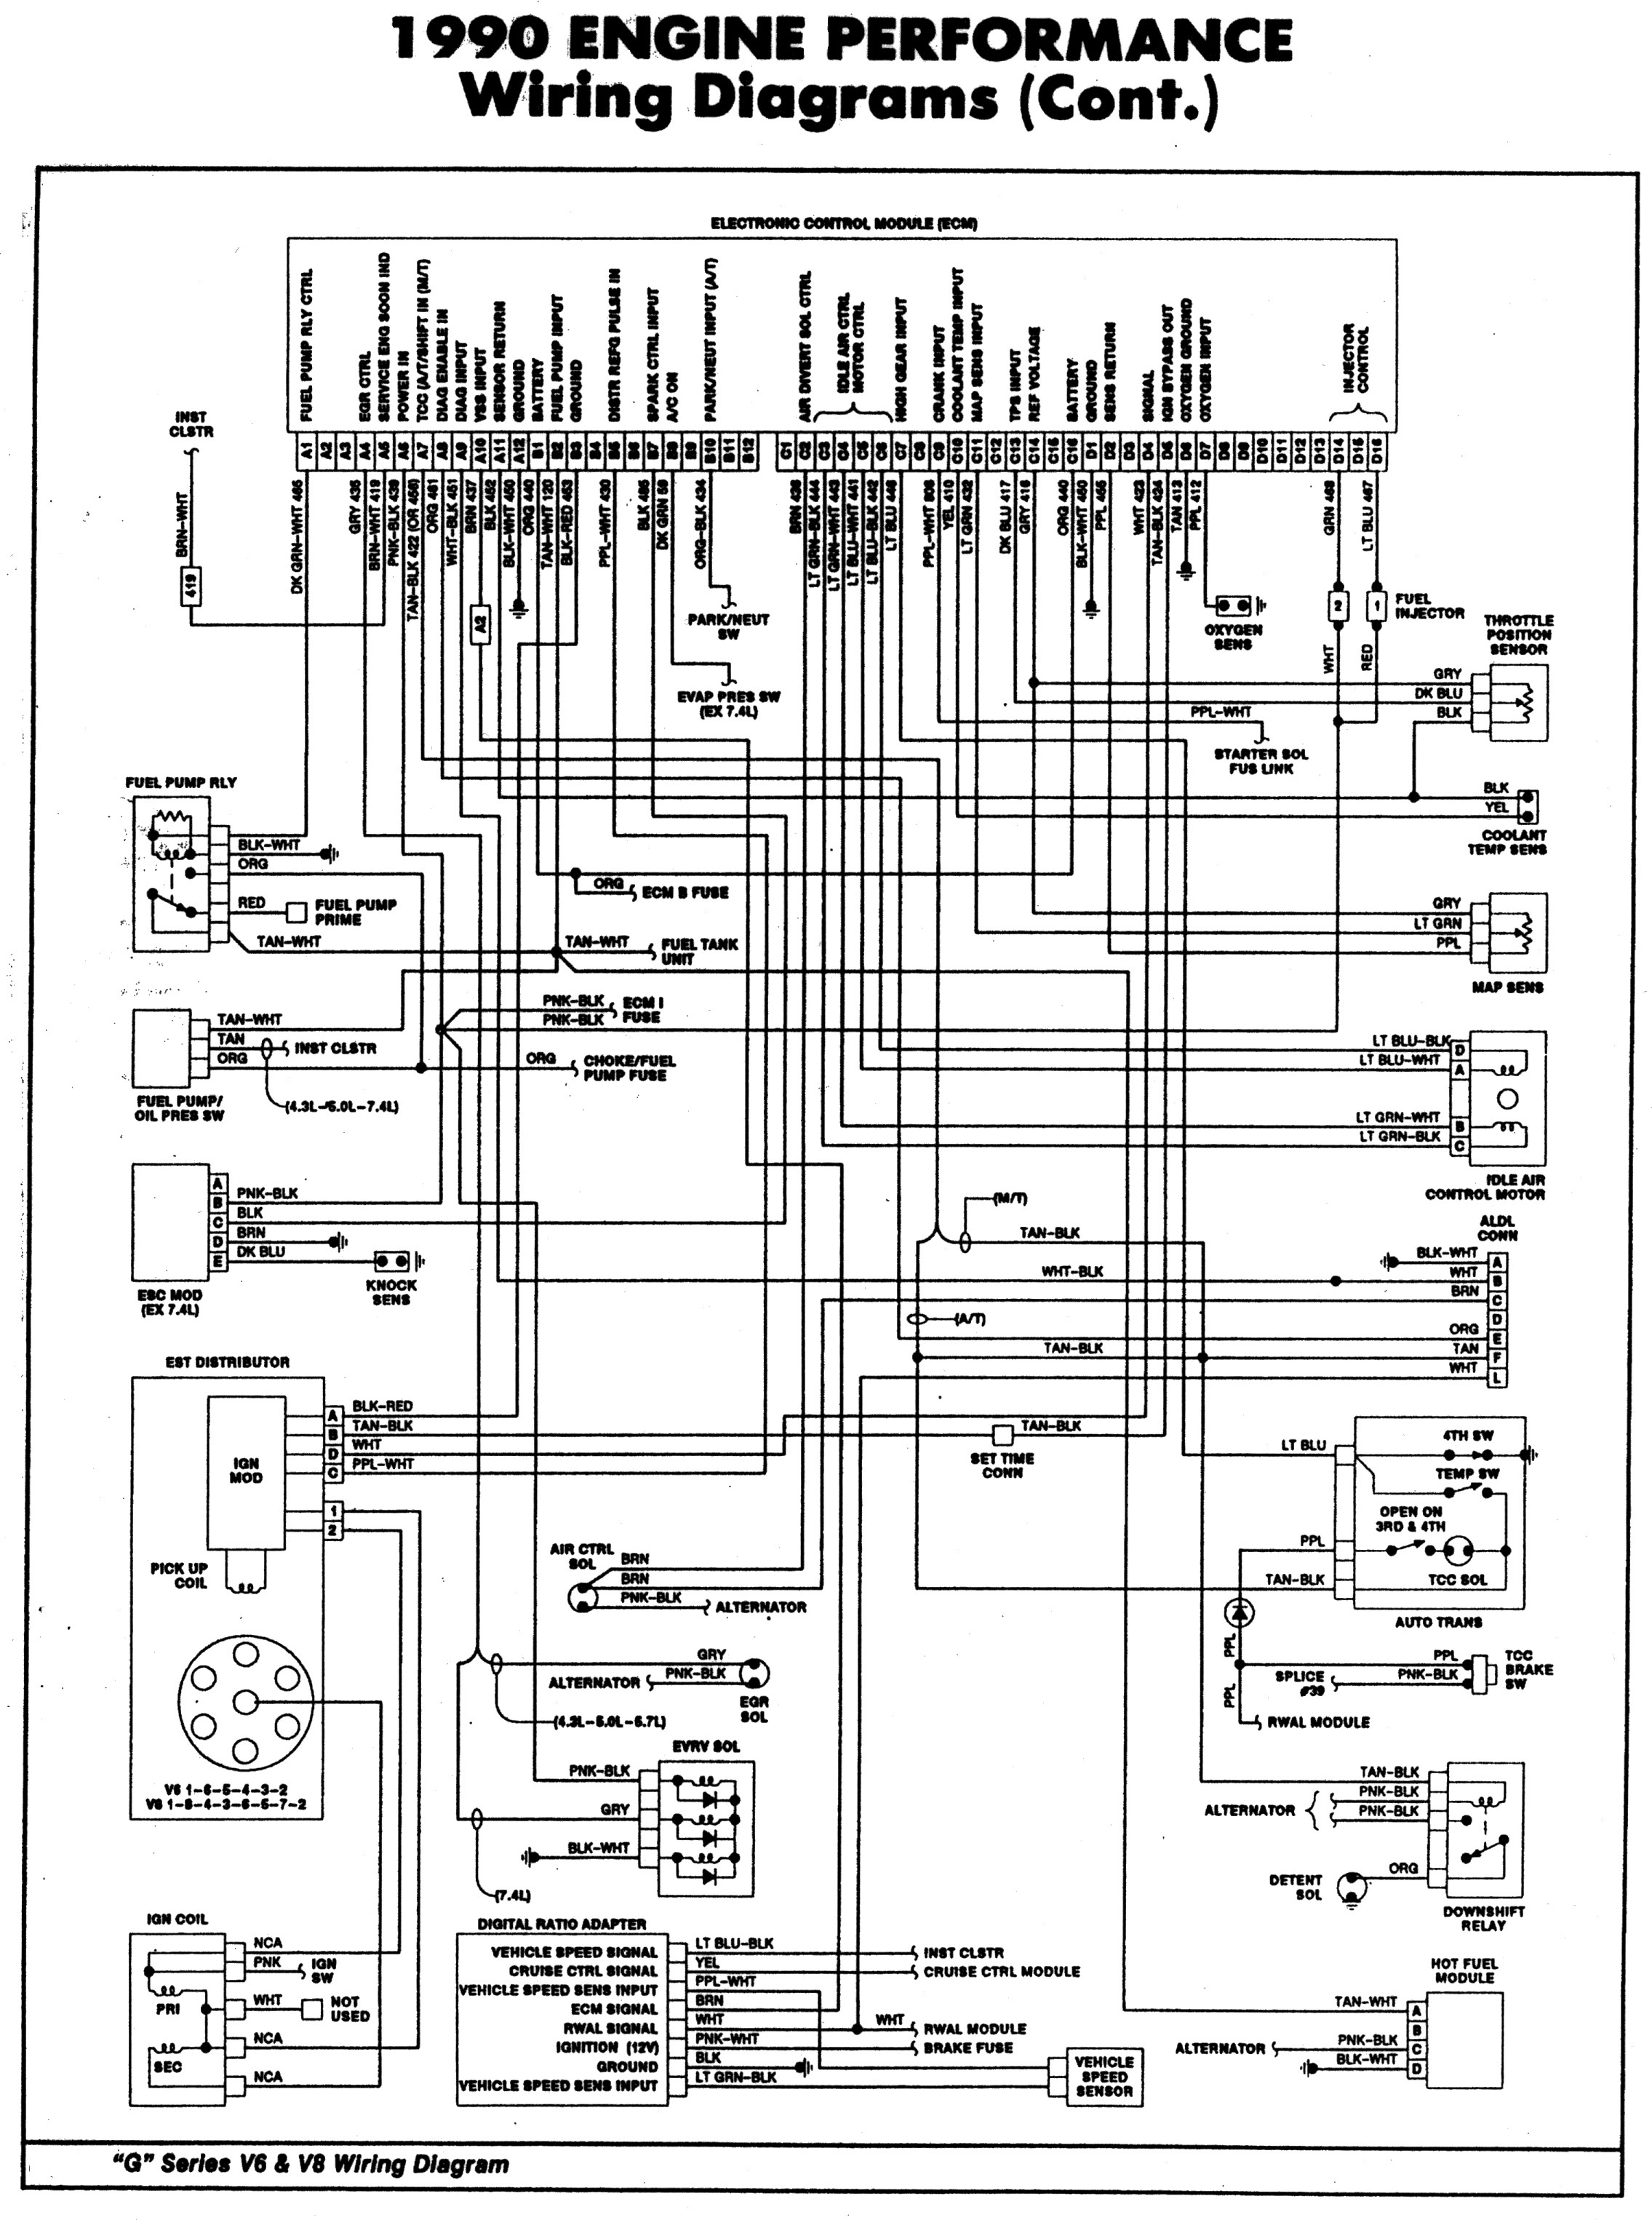 small resolution of wrg 1641 psl 2000 smoke detector wiring diagram 1990 chevy wiring diagram wiring diagram schematics